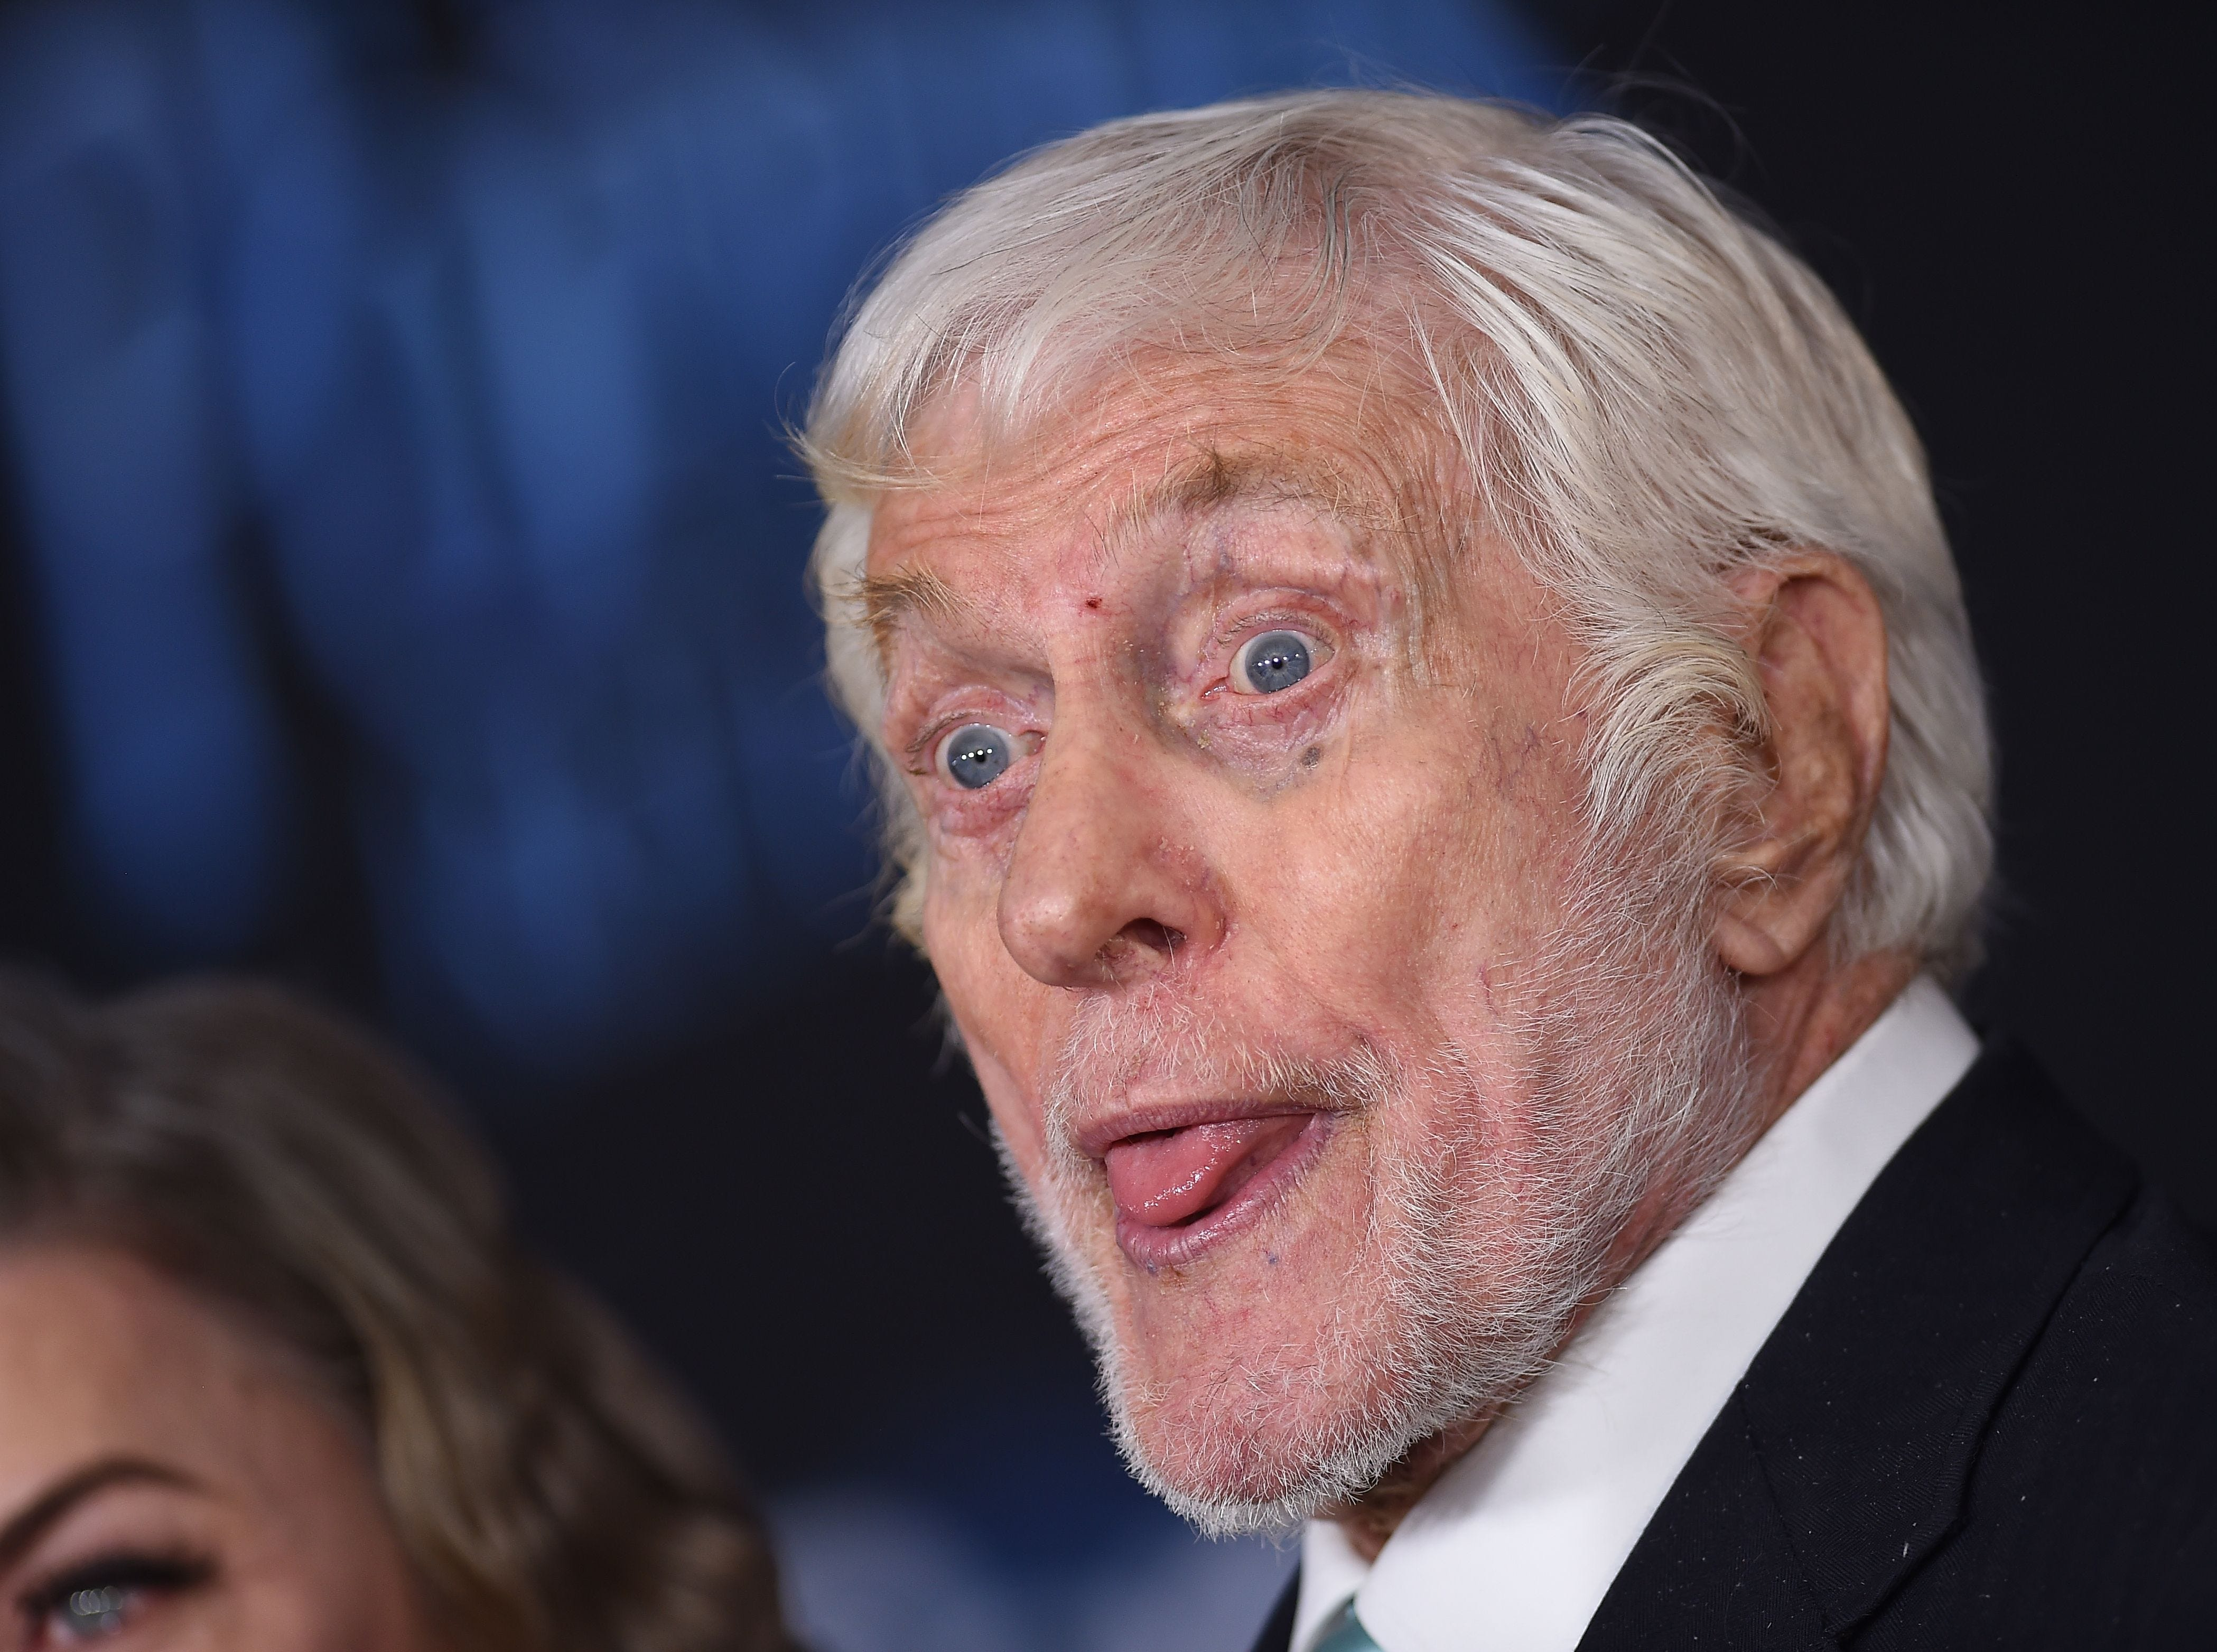 """US actor Dick Van Dyke arrives for the world premiere of Disney's """"Mary Poppins Returns"""" at the Dolby theatre in Hollywood on November 29, 2018. (Photo by VALERIE MACON / AFP)VALERIE MACON/AFP/Getty Images ORG XMIT: 'Mary Pop ORIG FILE ID: AFP_1B81LA"""